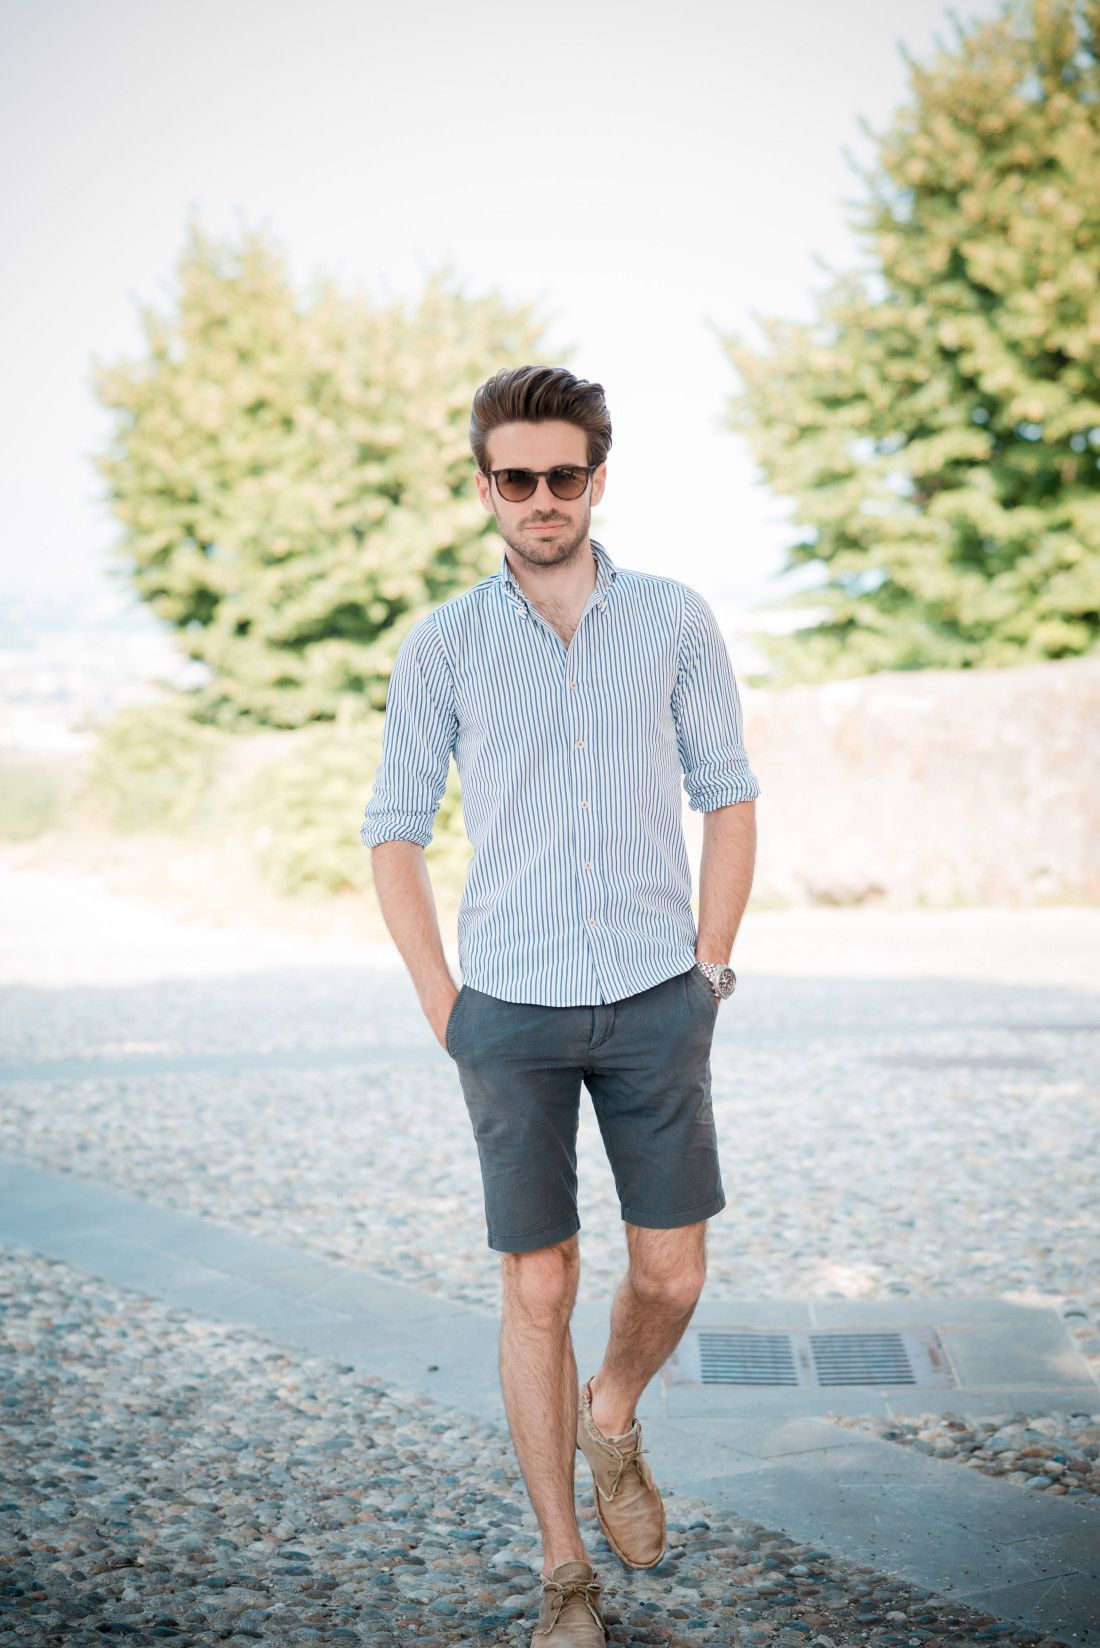 60 Summer Outfits For Men – Stylish Warm Weather Clothing Ideas Are you a man looking for some sweet summer style? Look no further than our quick guide of summer essentials that will have you primed and ready for everything from that casual cookout to the pool party of the season.